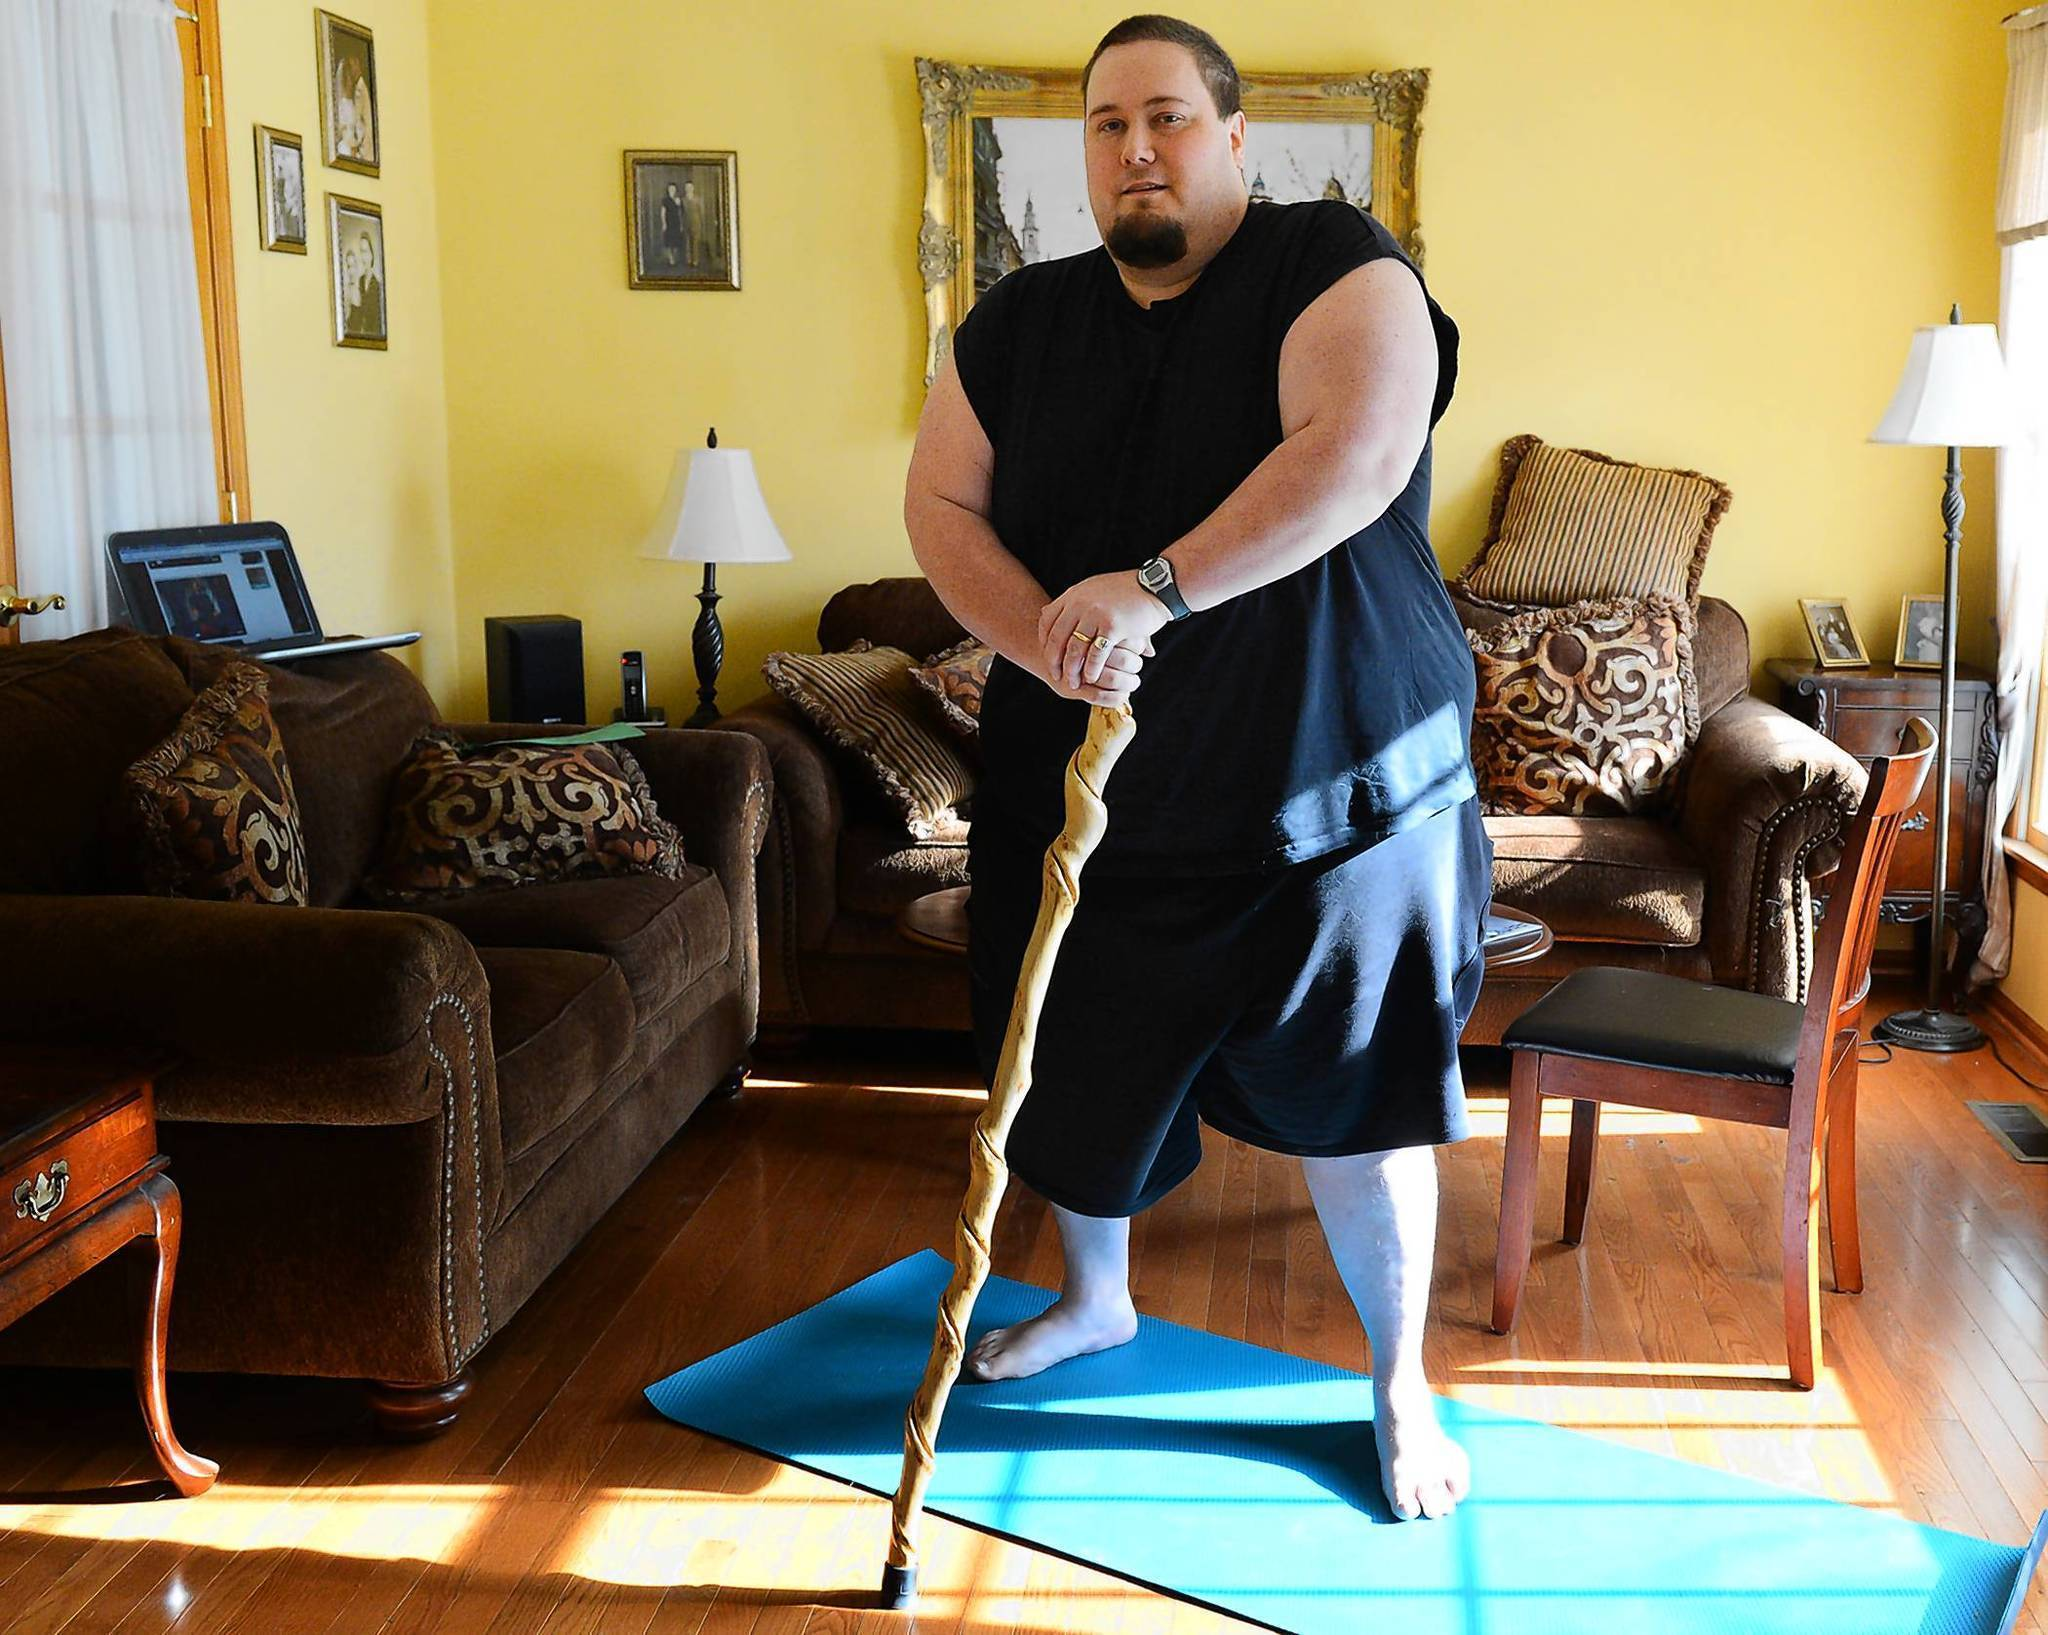 Nazareth Father Seeks To Lose 200 Pounds Through Diamond Dallas Page S Yoga The Morning Call